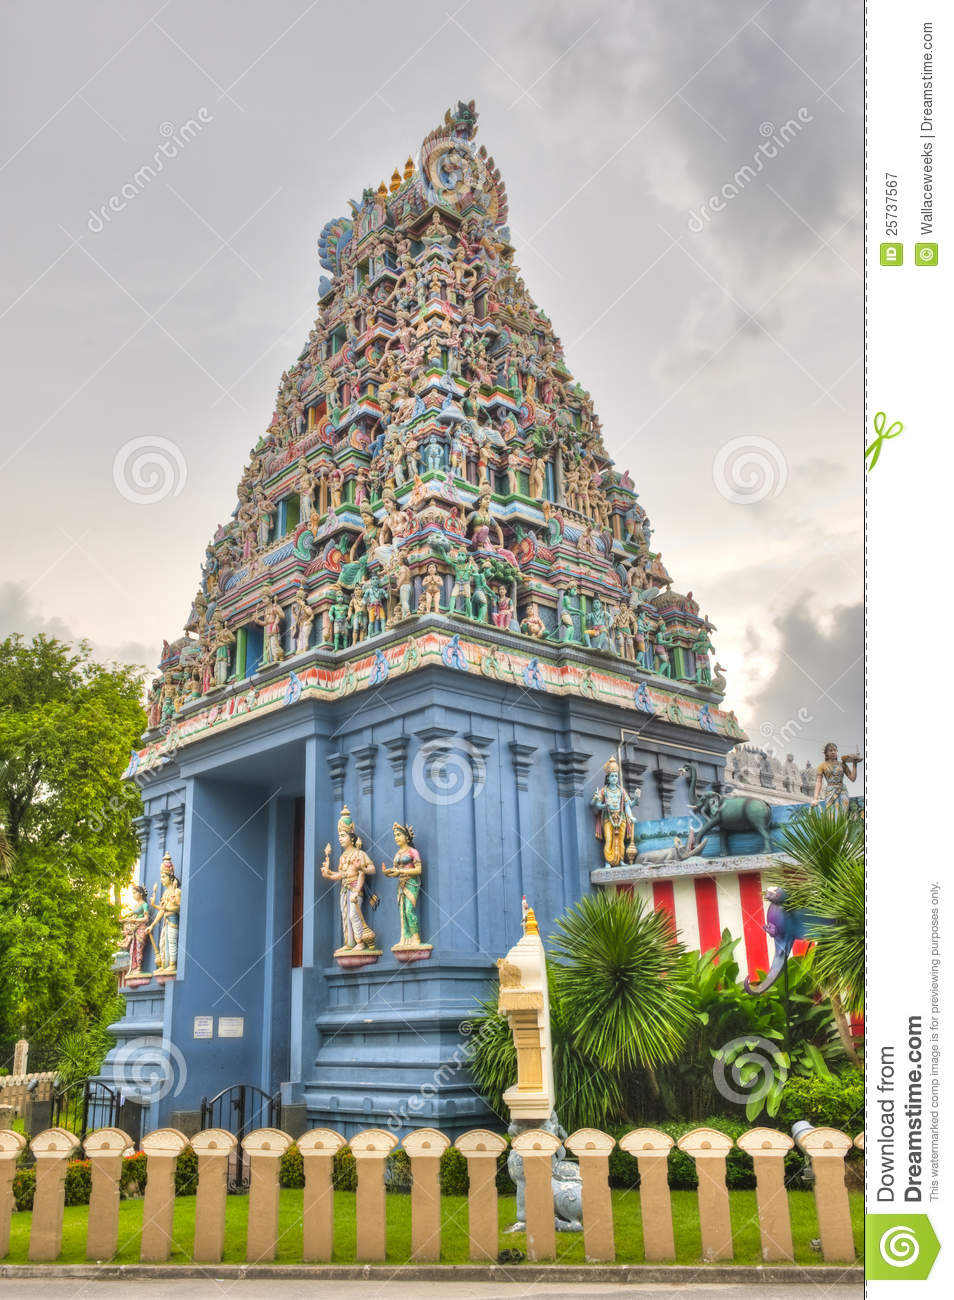 Hindu Temple in Singapore